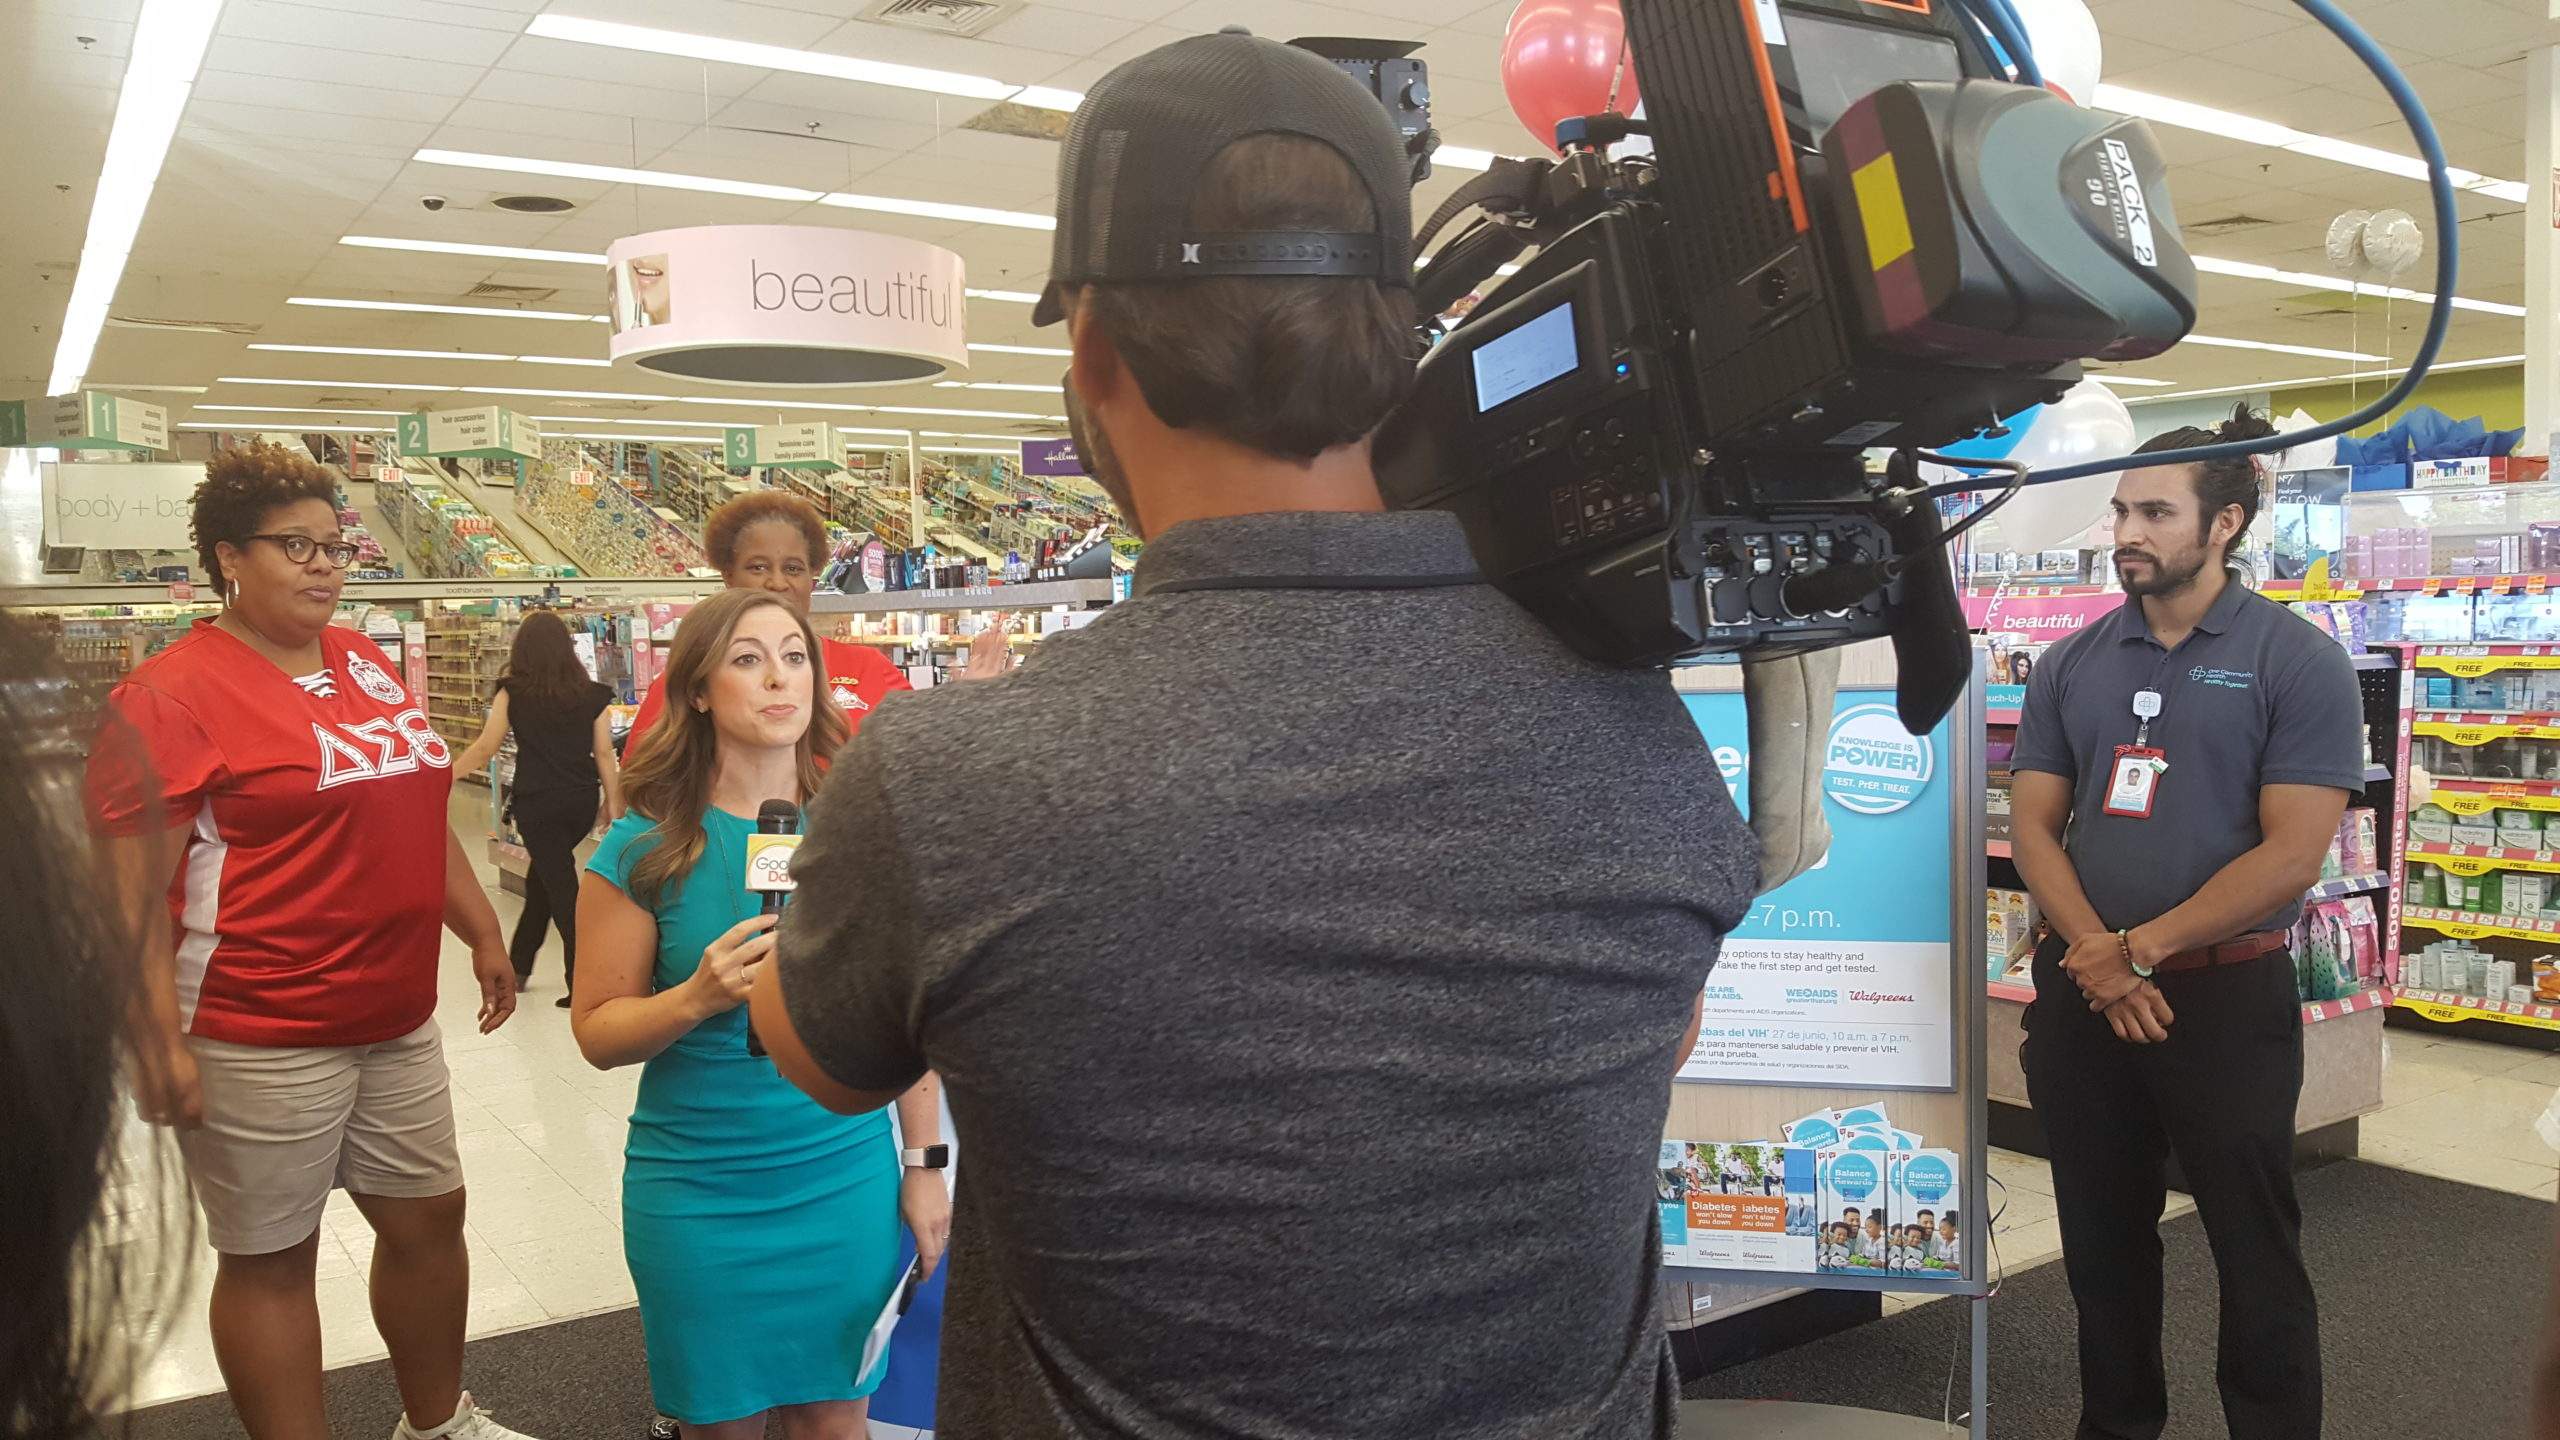 Filming in Walgreens